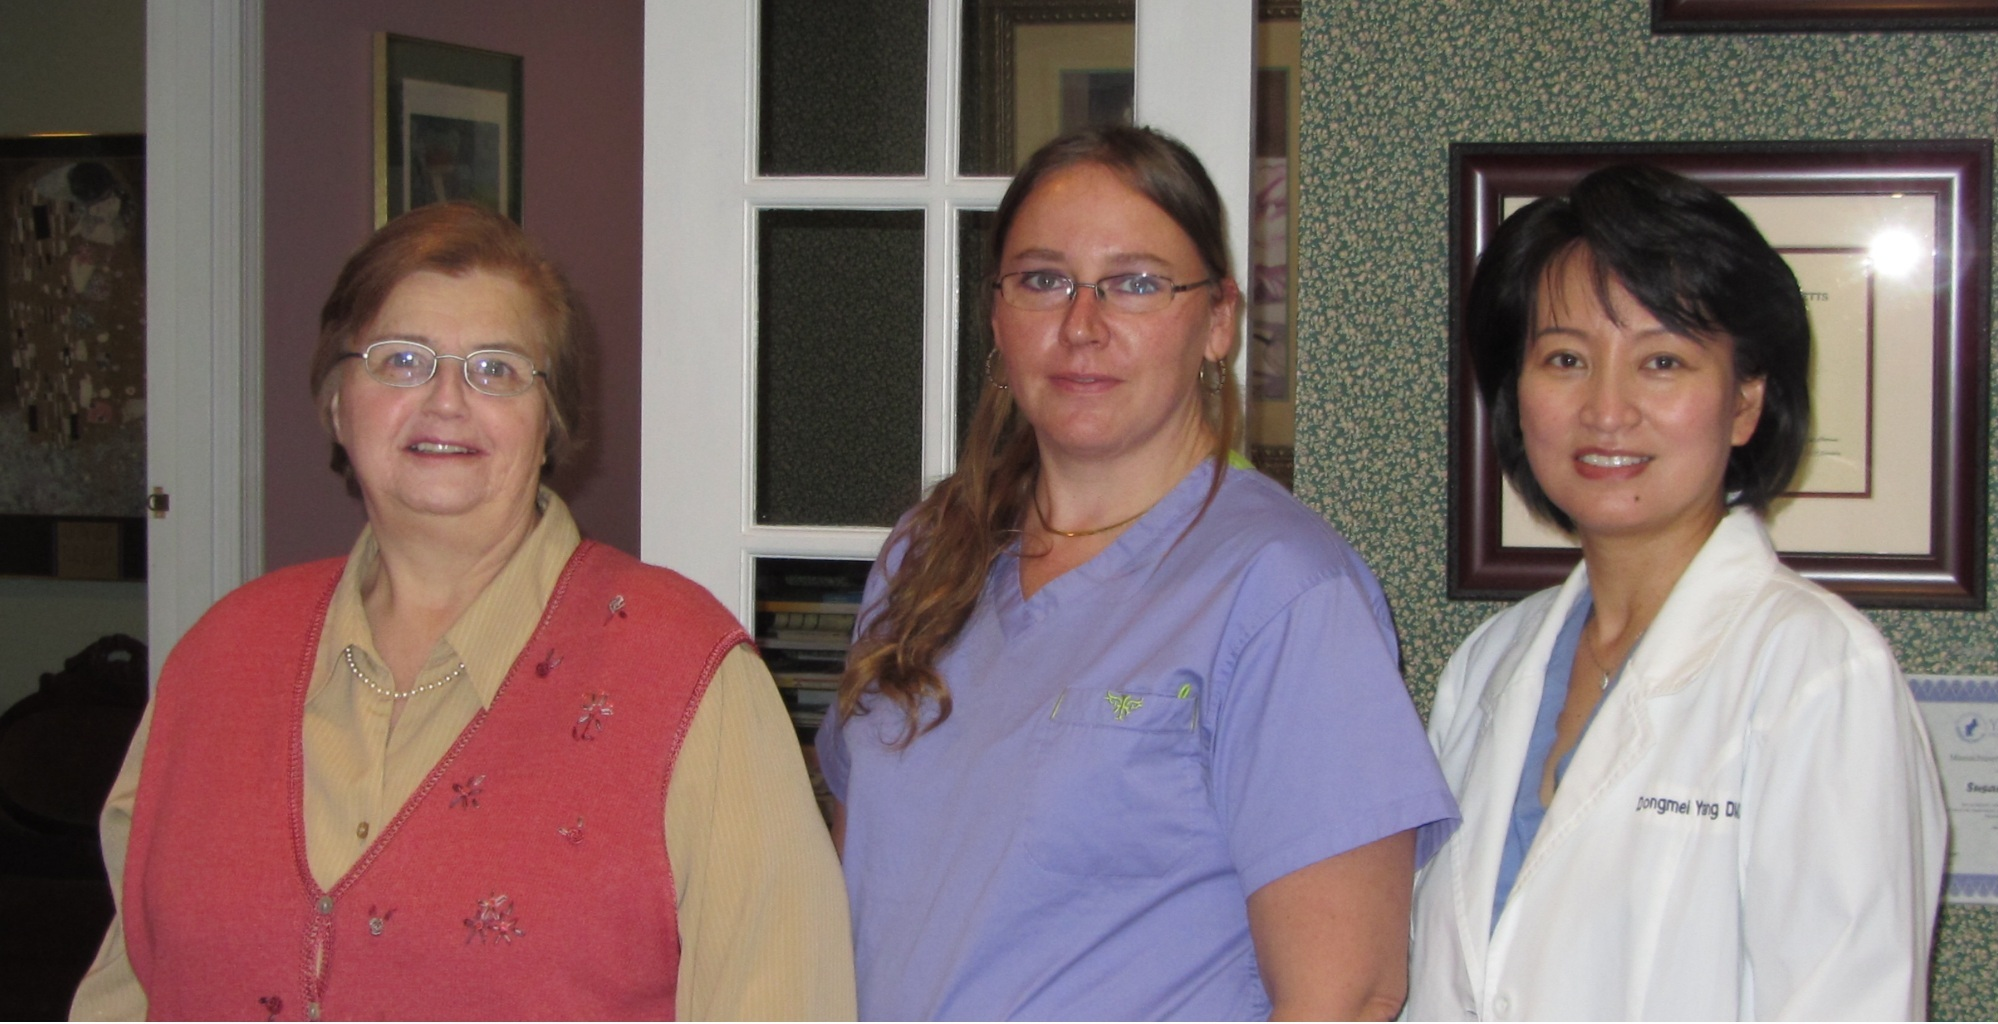 Our Team: from left: Susan (Office Manager), Holli (Dental Assistant), Dr. Yang (Owner, Dentist)